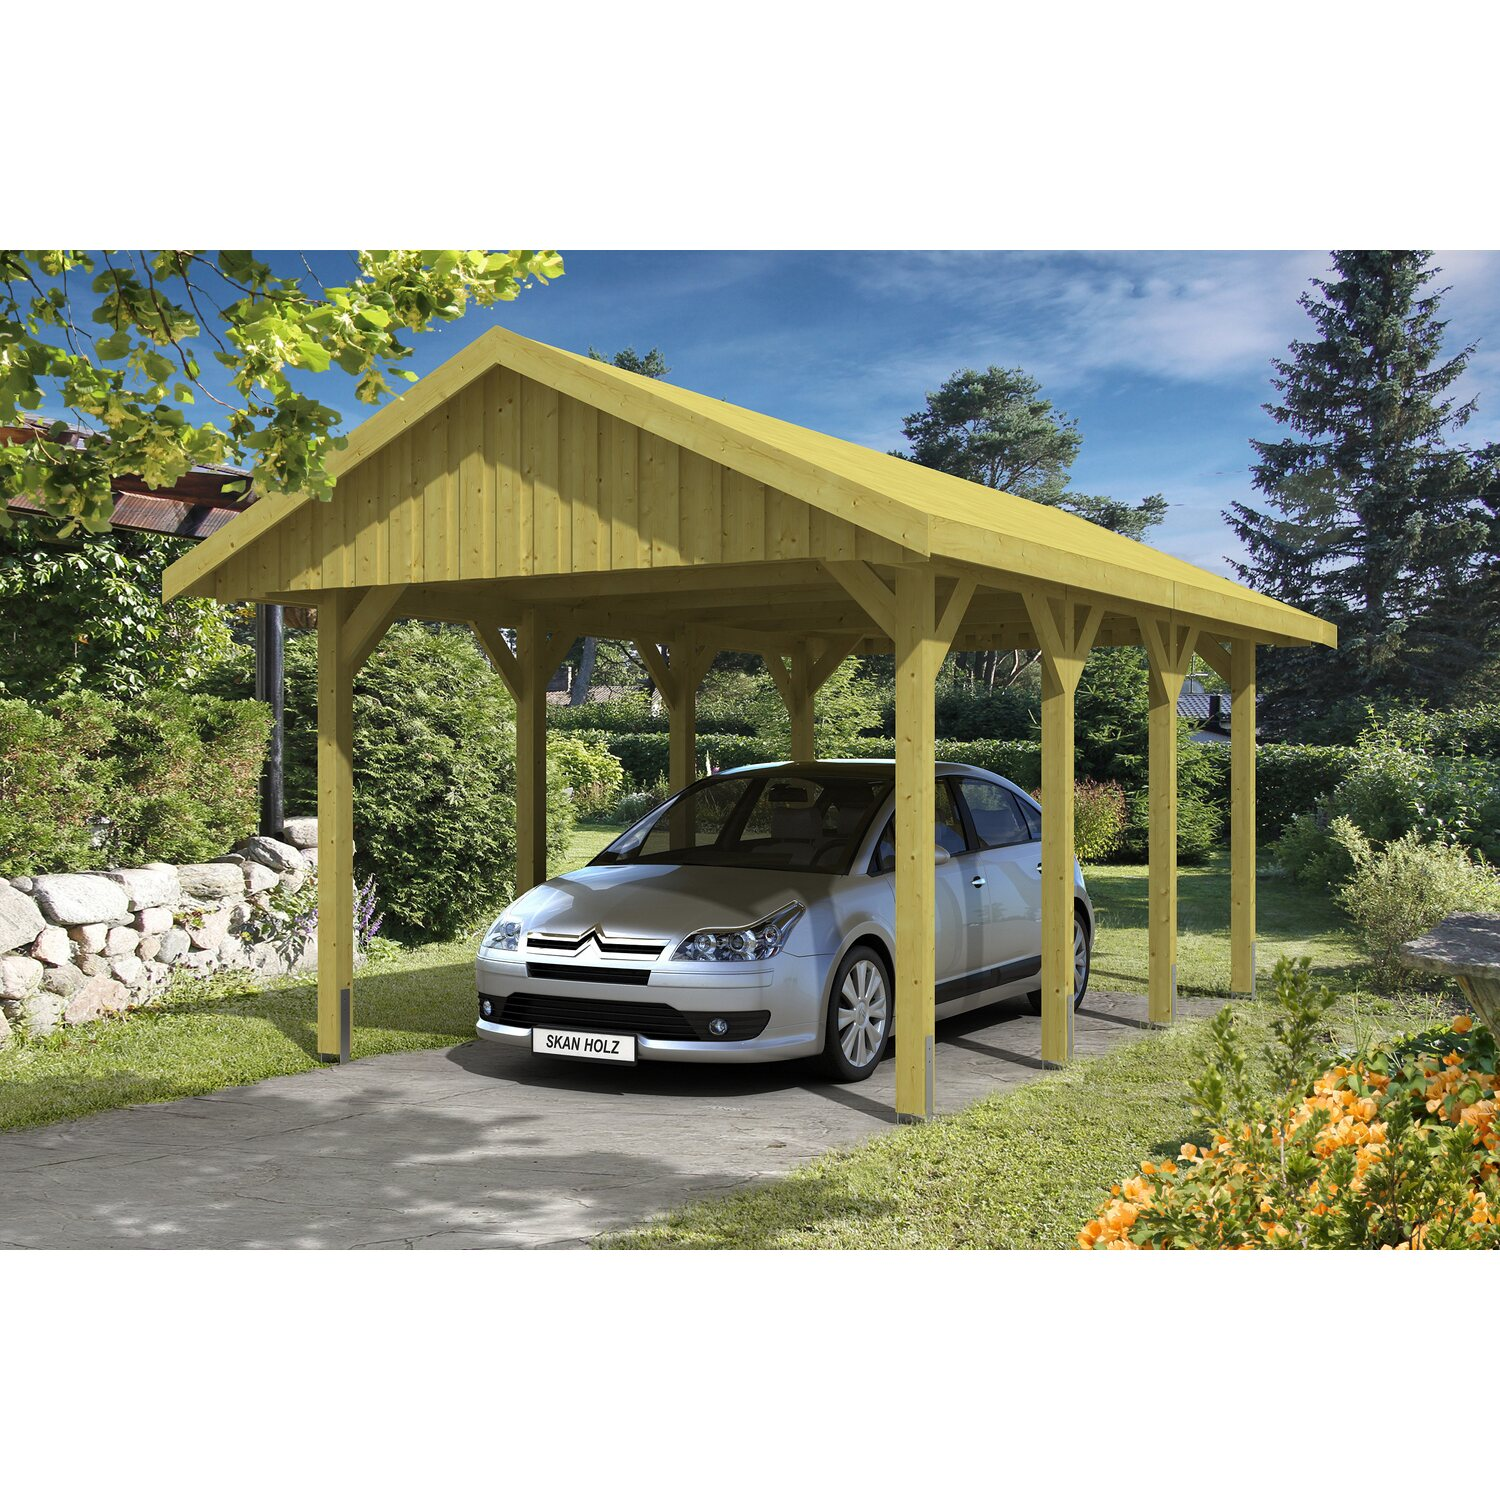 skan holz satteldach carport sauerland 380 cm x 600 cm dachschalung kaufen bei obi. Black Bedroom Furniture Sets. Home Design Ideas